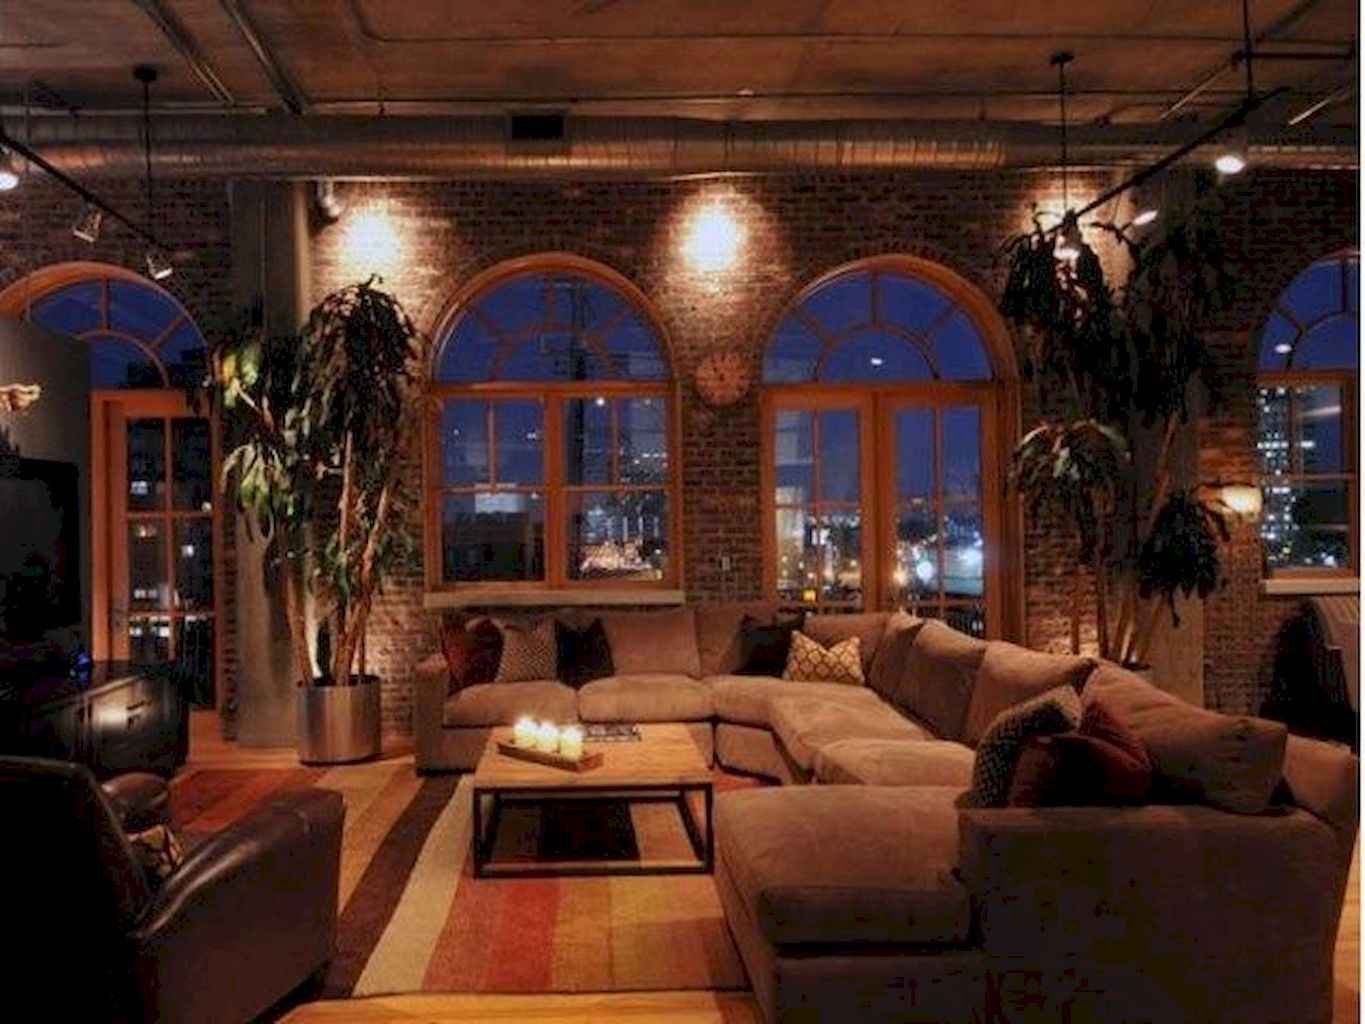 Cozy apartment decorating ideas on a budget (38)